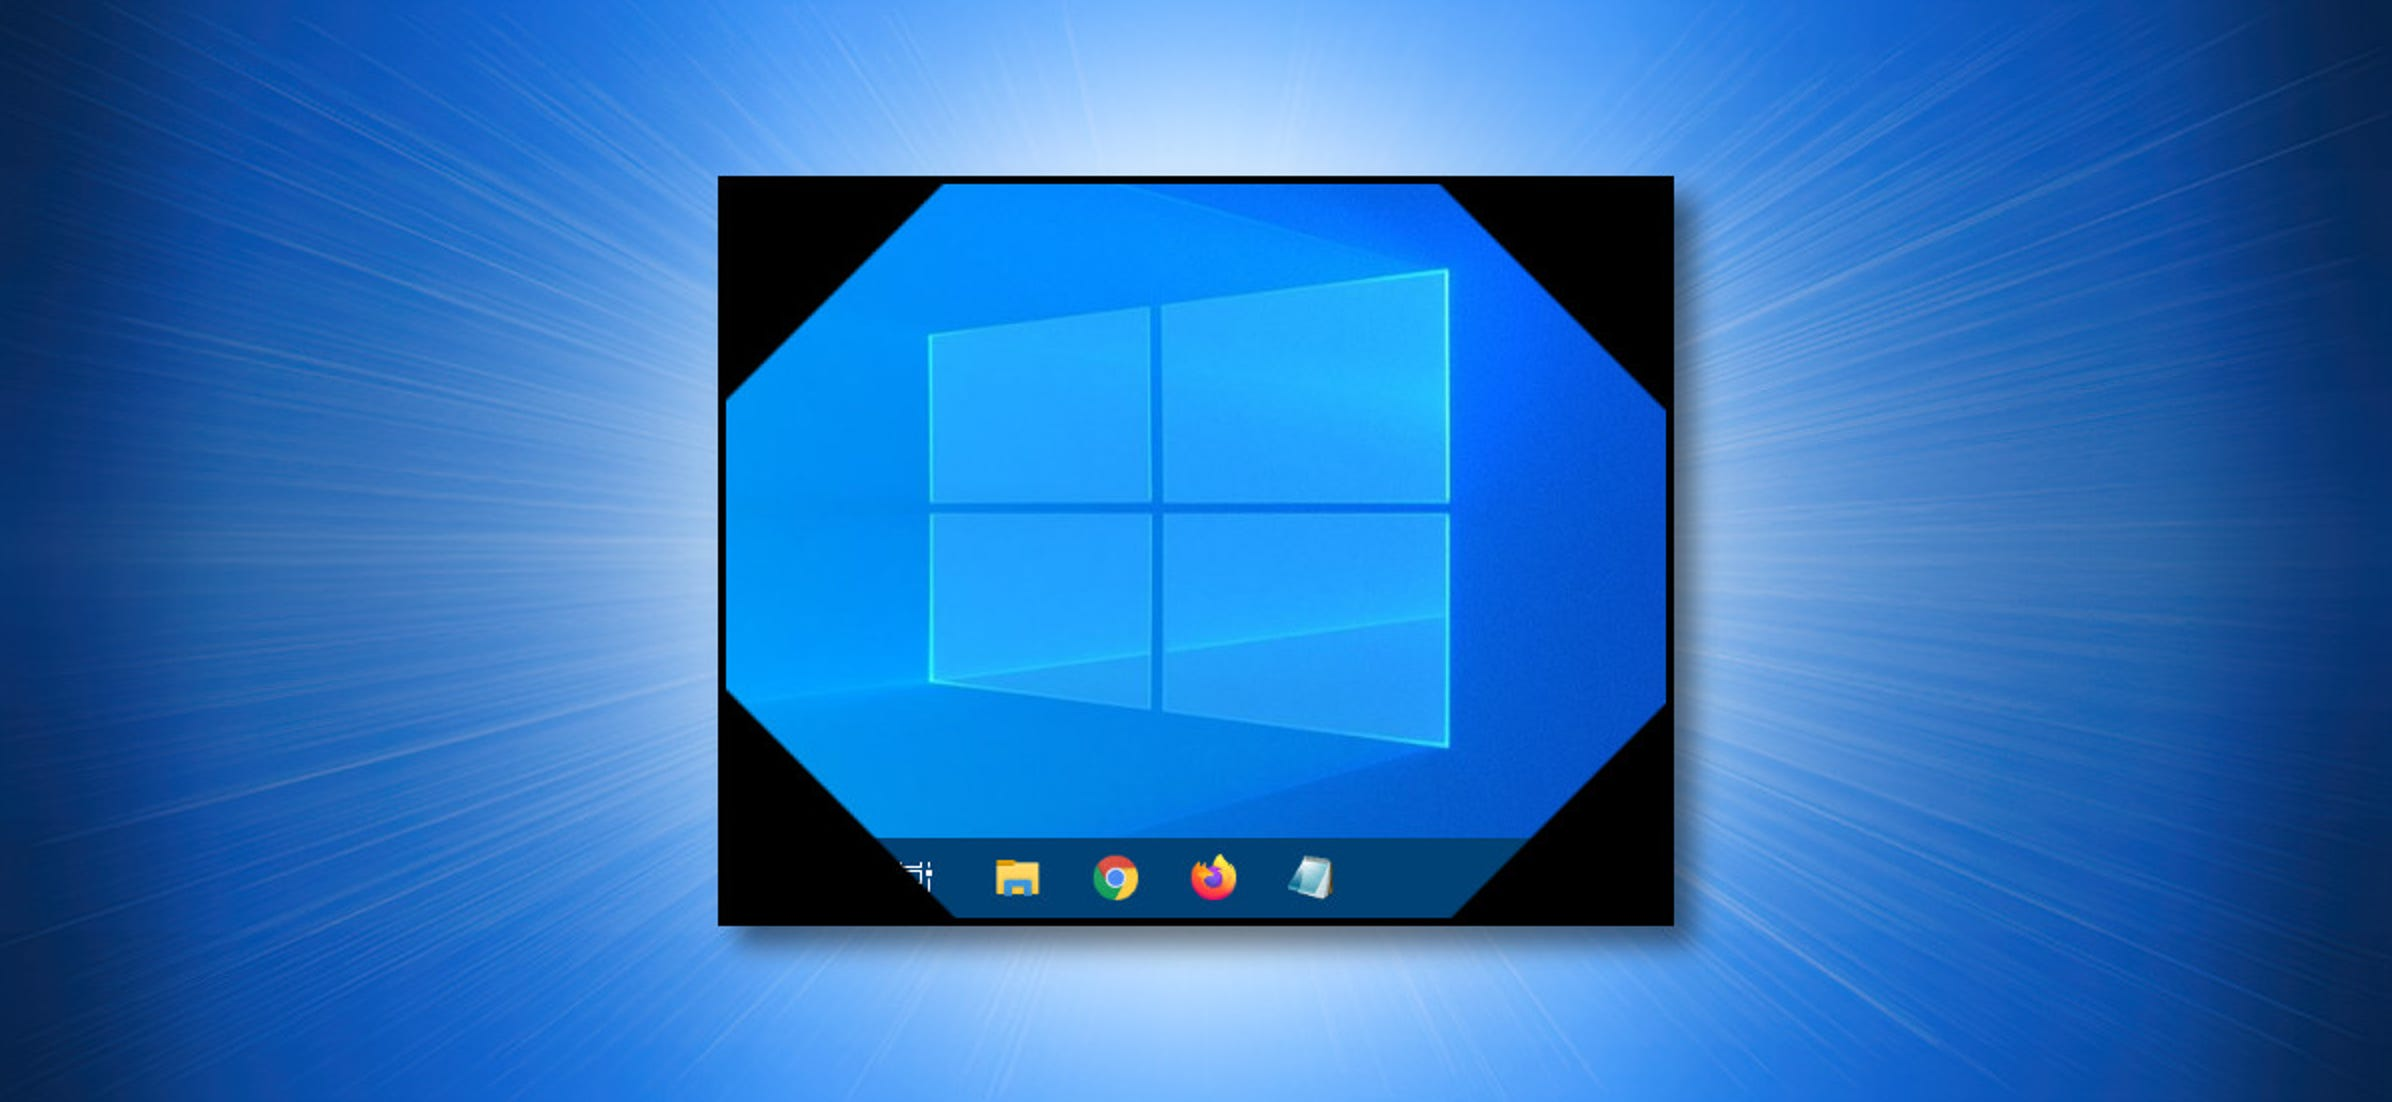 How to Show or Hide Specific Desktop Icons on Windows 10